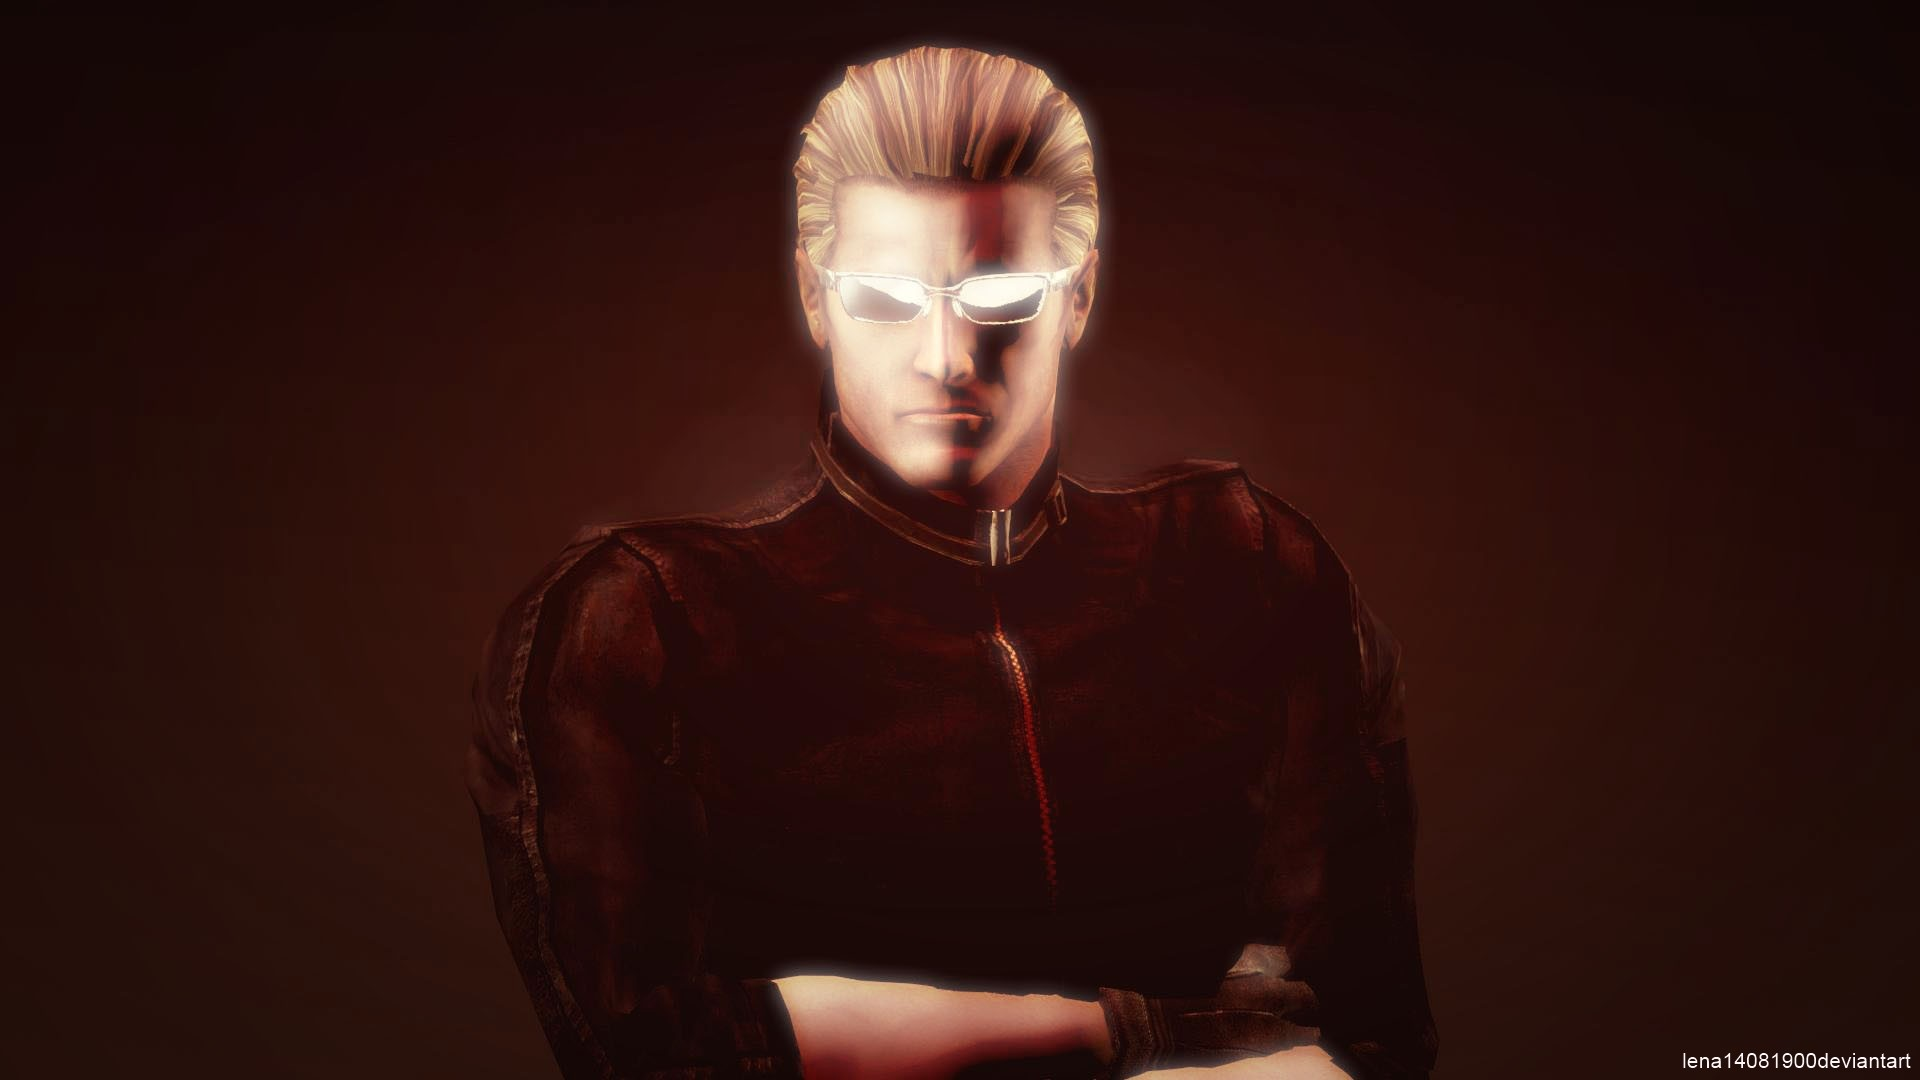 Res: 1920x1080, Albert Wesker Wallpaper by WolfShadow14081990 Albert Wesker Wallpaper by  WolfShadow14081990